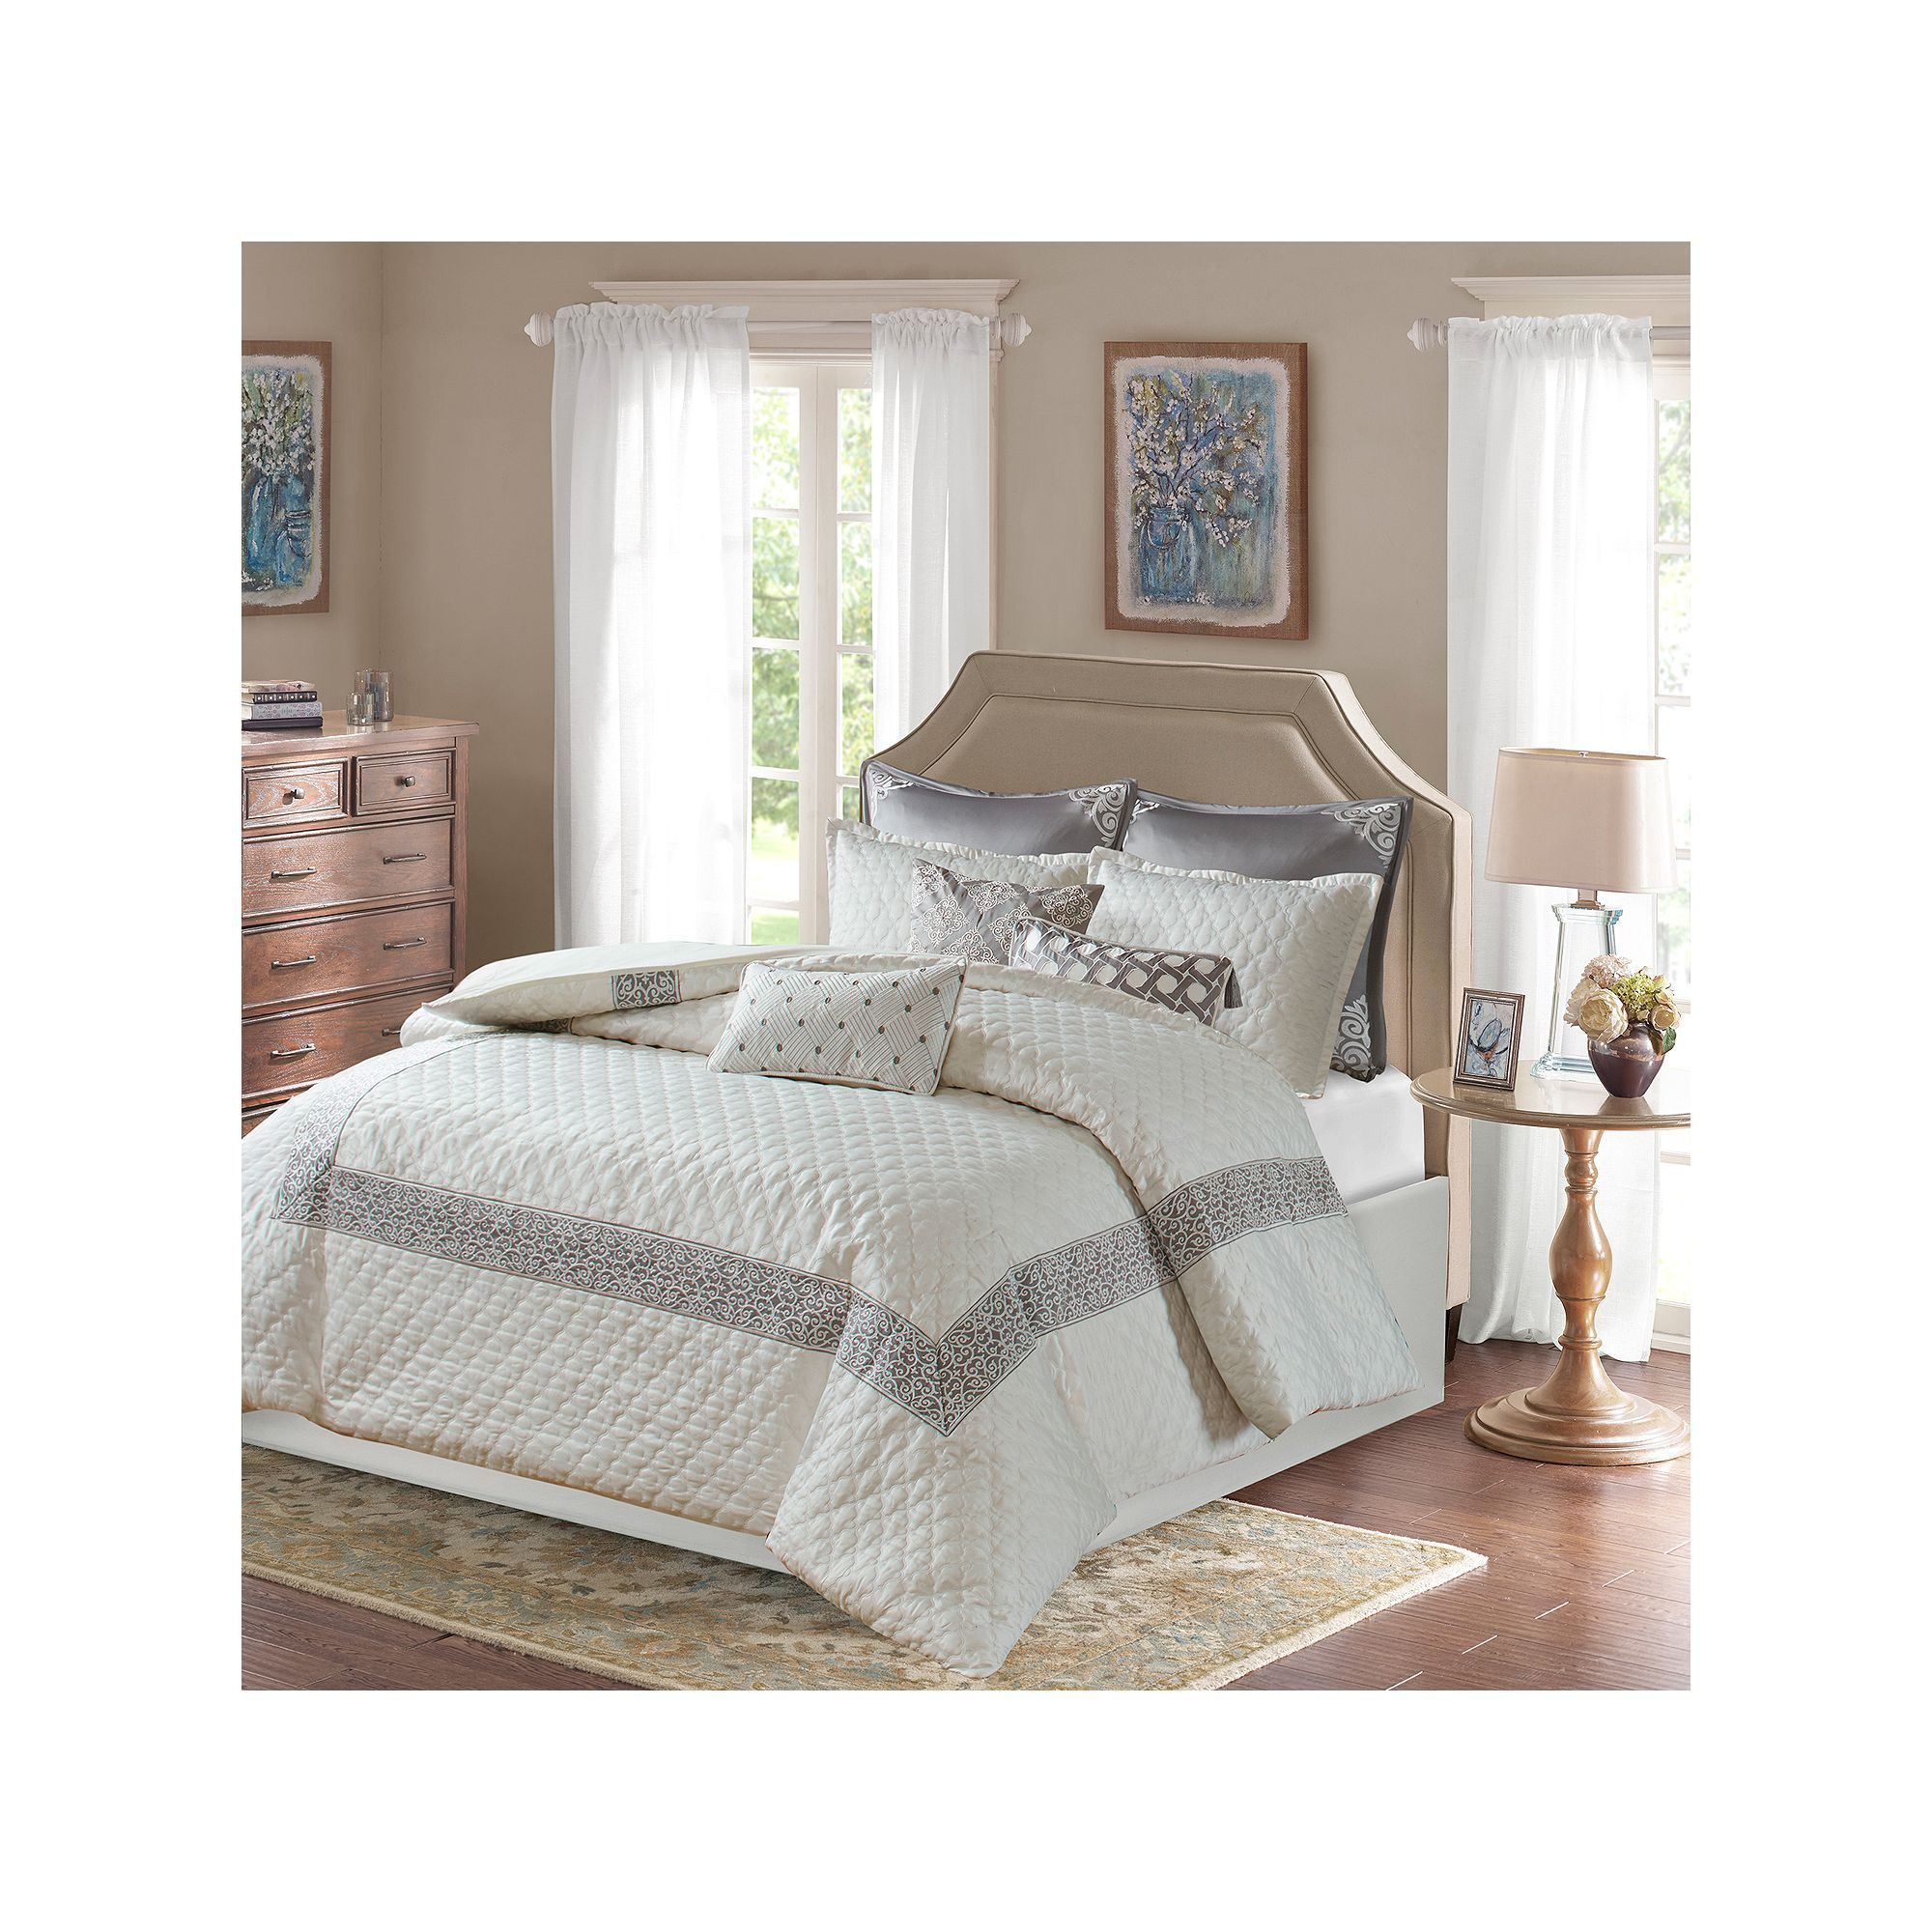 hypoallergenic plush gsm season customer pcr fill machine goose hotel all in collection microfiber sets down comforter washable insert reviews quilted alternative equinox duvet white set helpful best bedding rated